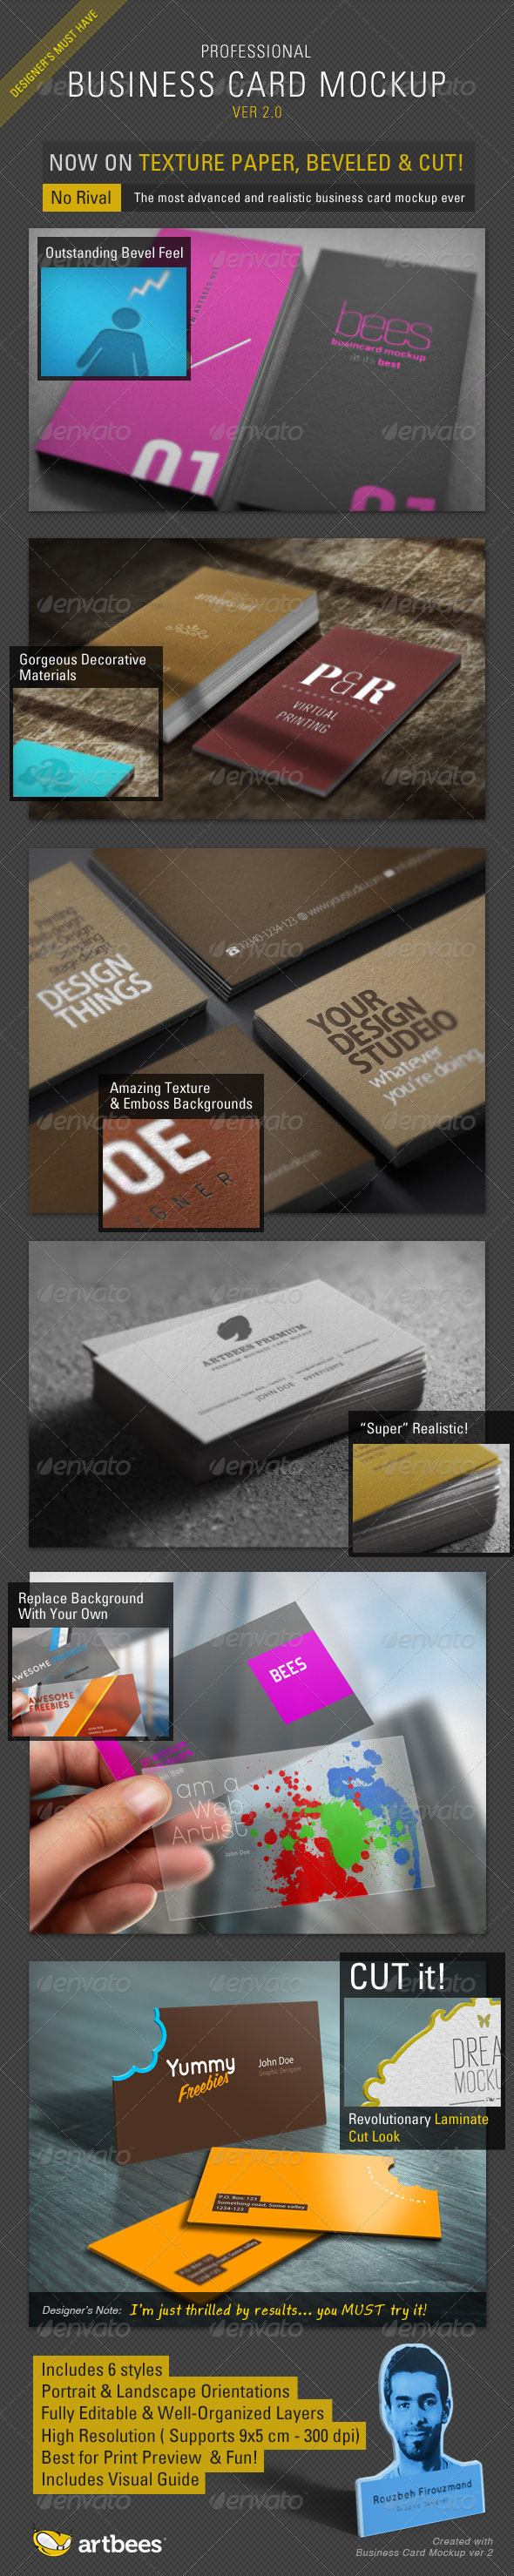 Business Card Mockup Pro - ver 2.0 - Business Cards Print